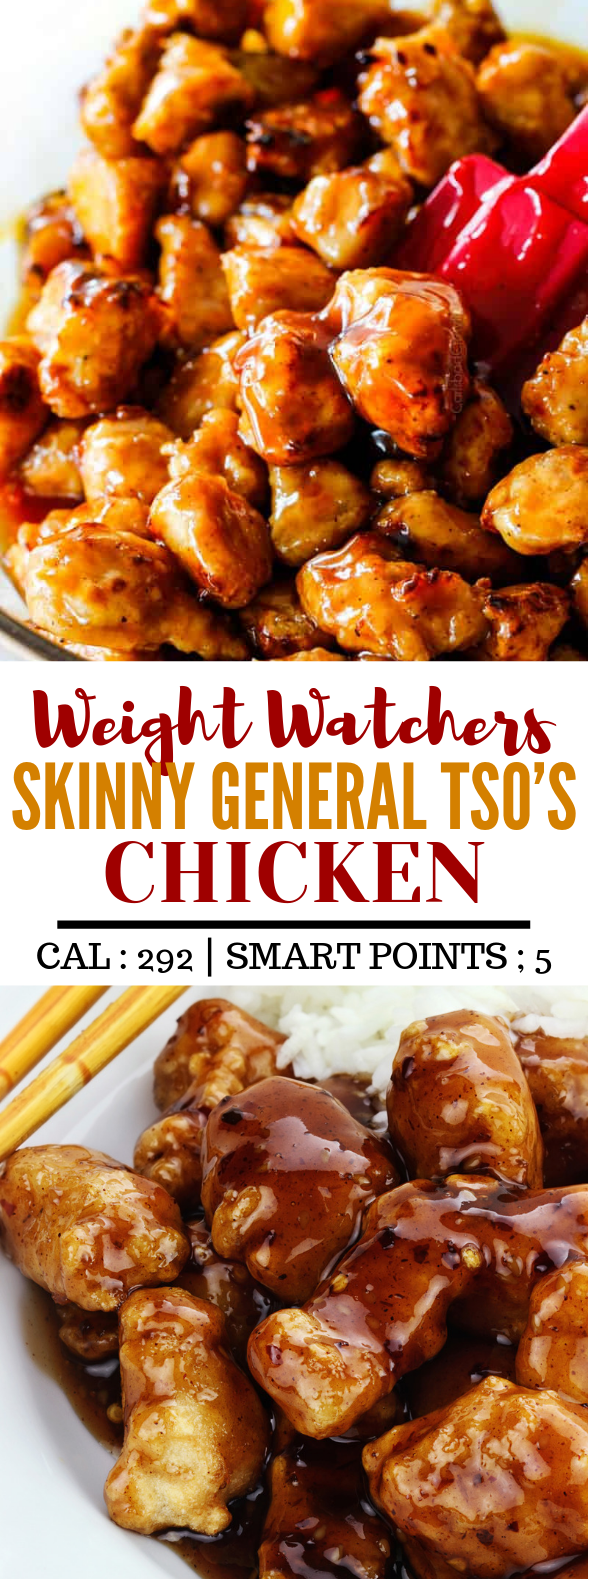 SKINNY GENERAL TSO'S CHICKEN #diet #healthyeat